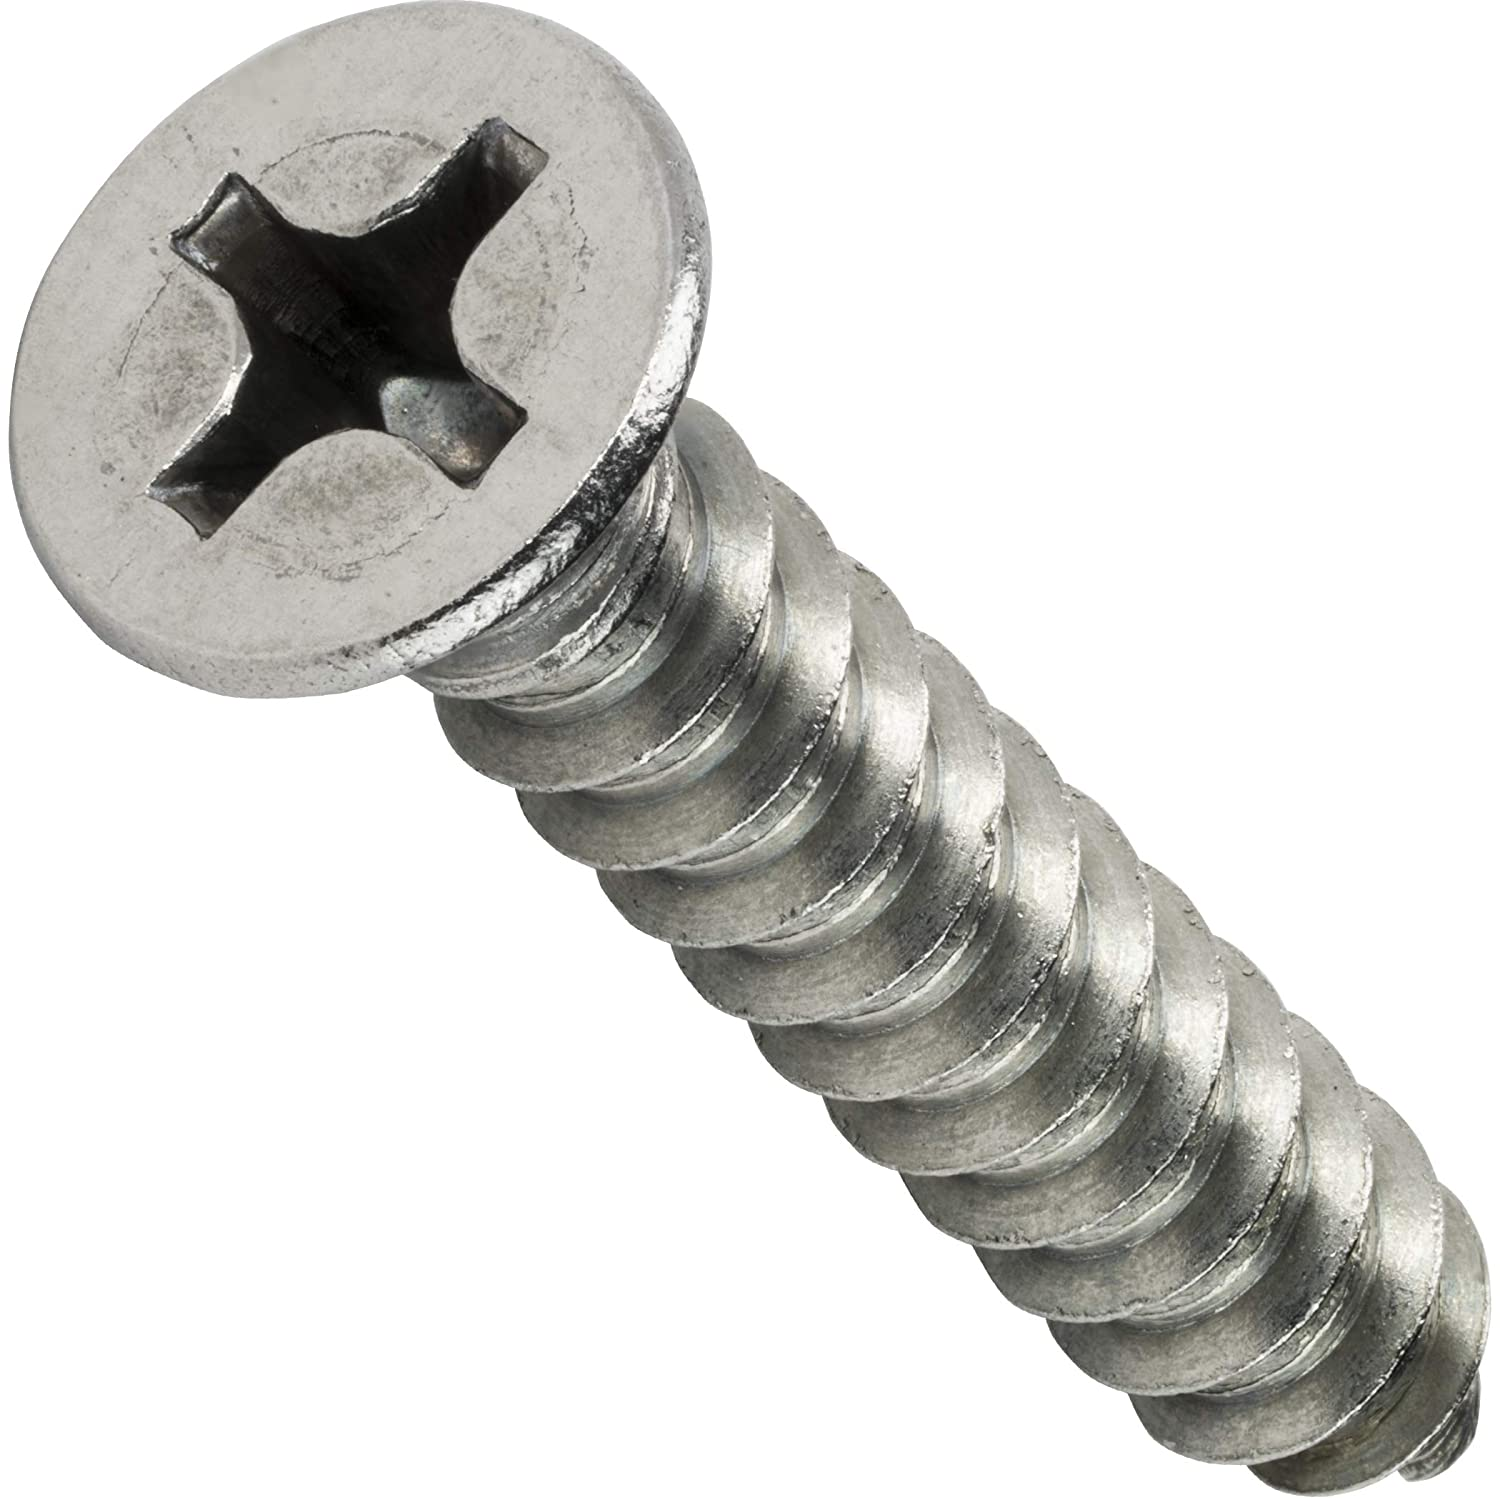 Full Thread Phillips Drive Stainless Steel 18-8 Self-Tapping Quantity 25 by Fastenere #12 x 3//4 Flat Head Sheet Metal Screws Bright Finish